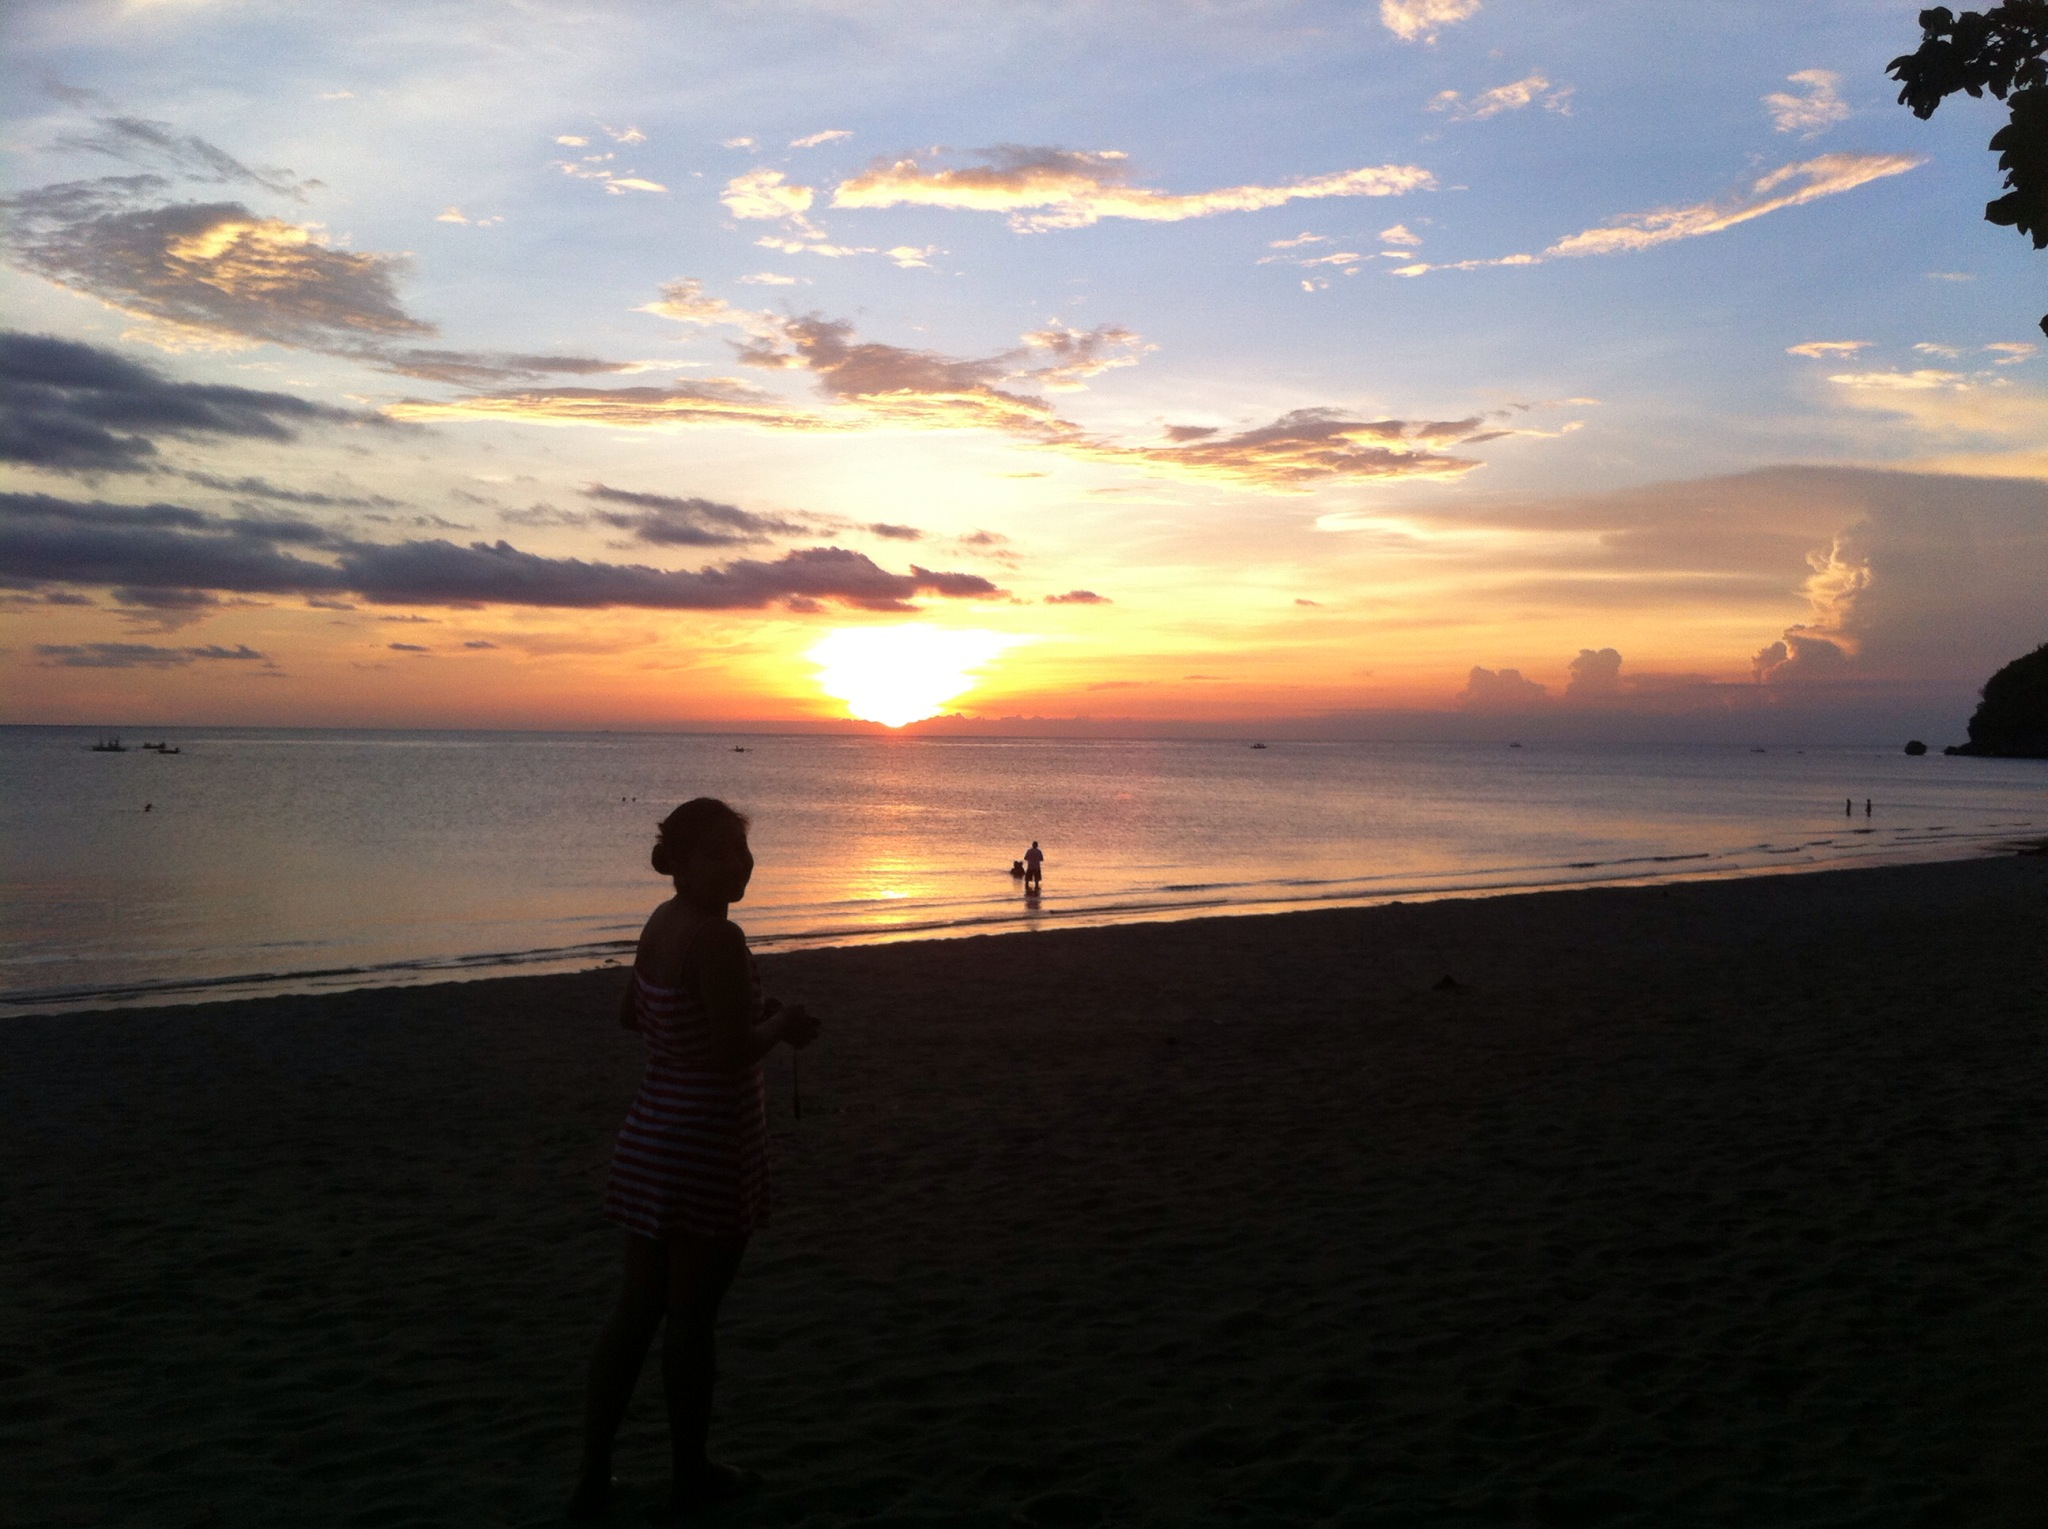 Zabrina Silhouette against Sugar Beach Sunset